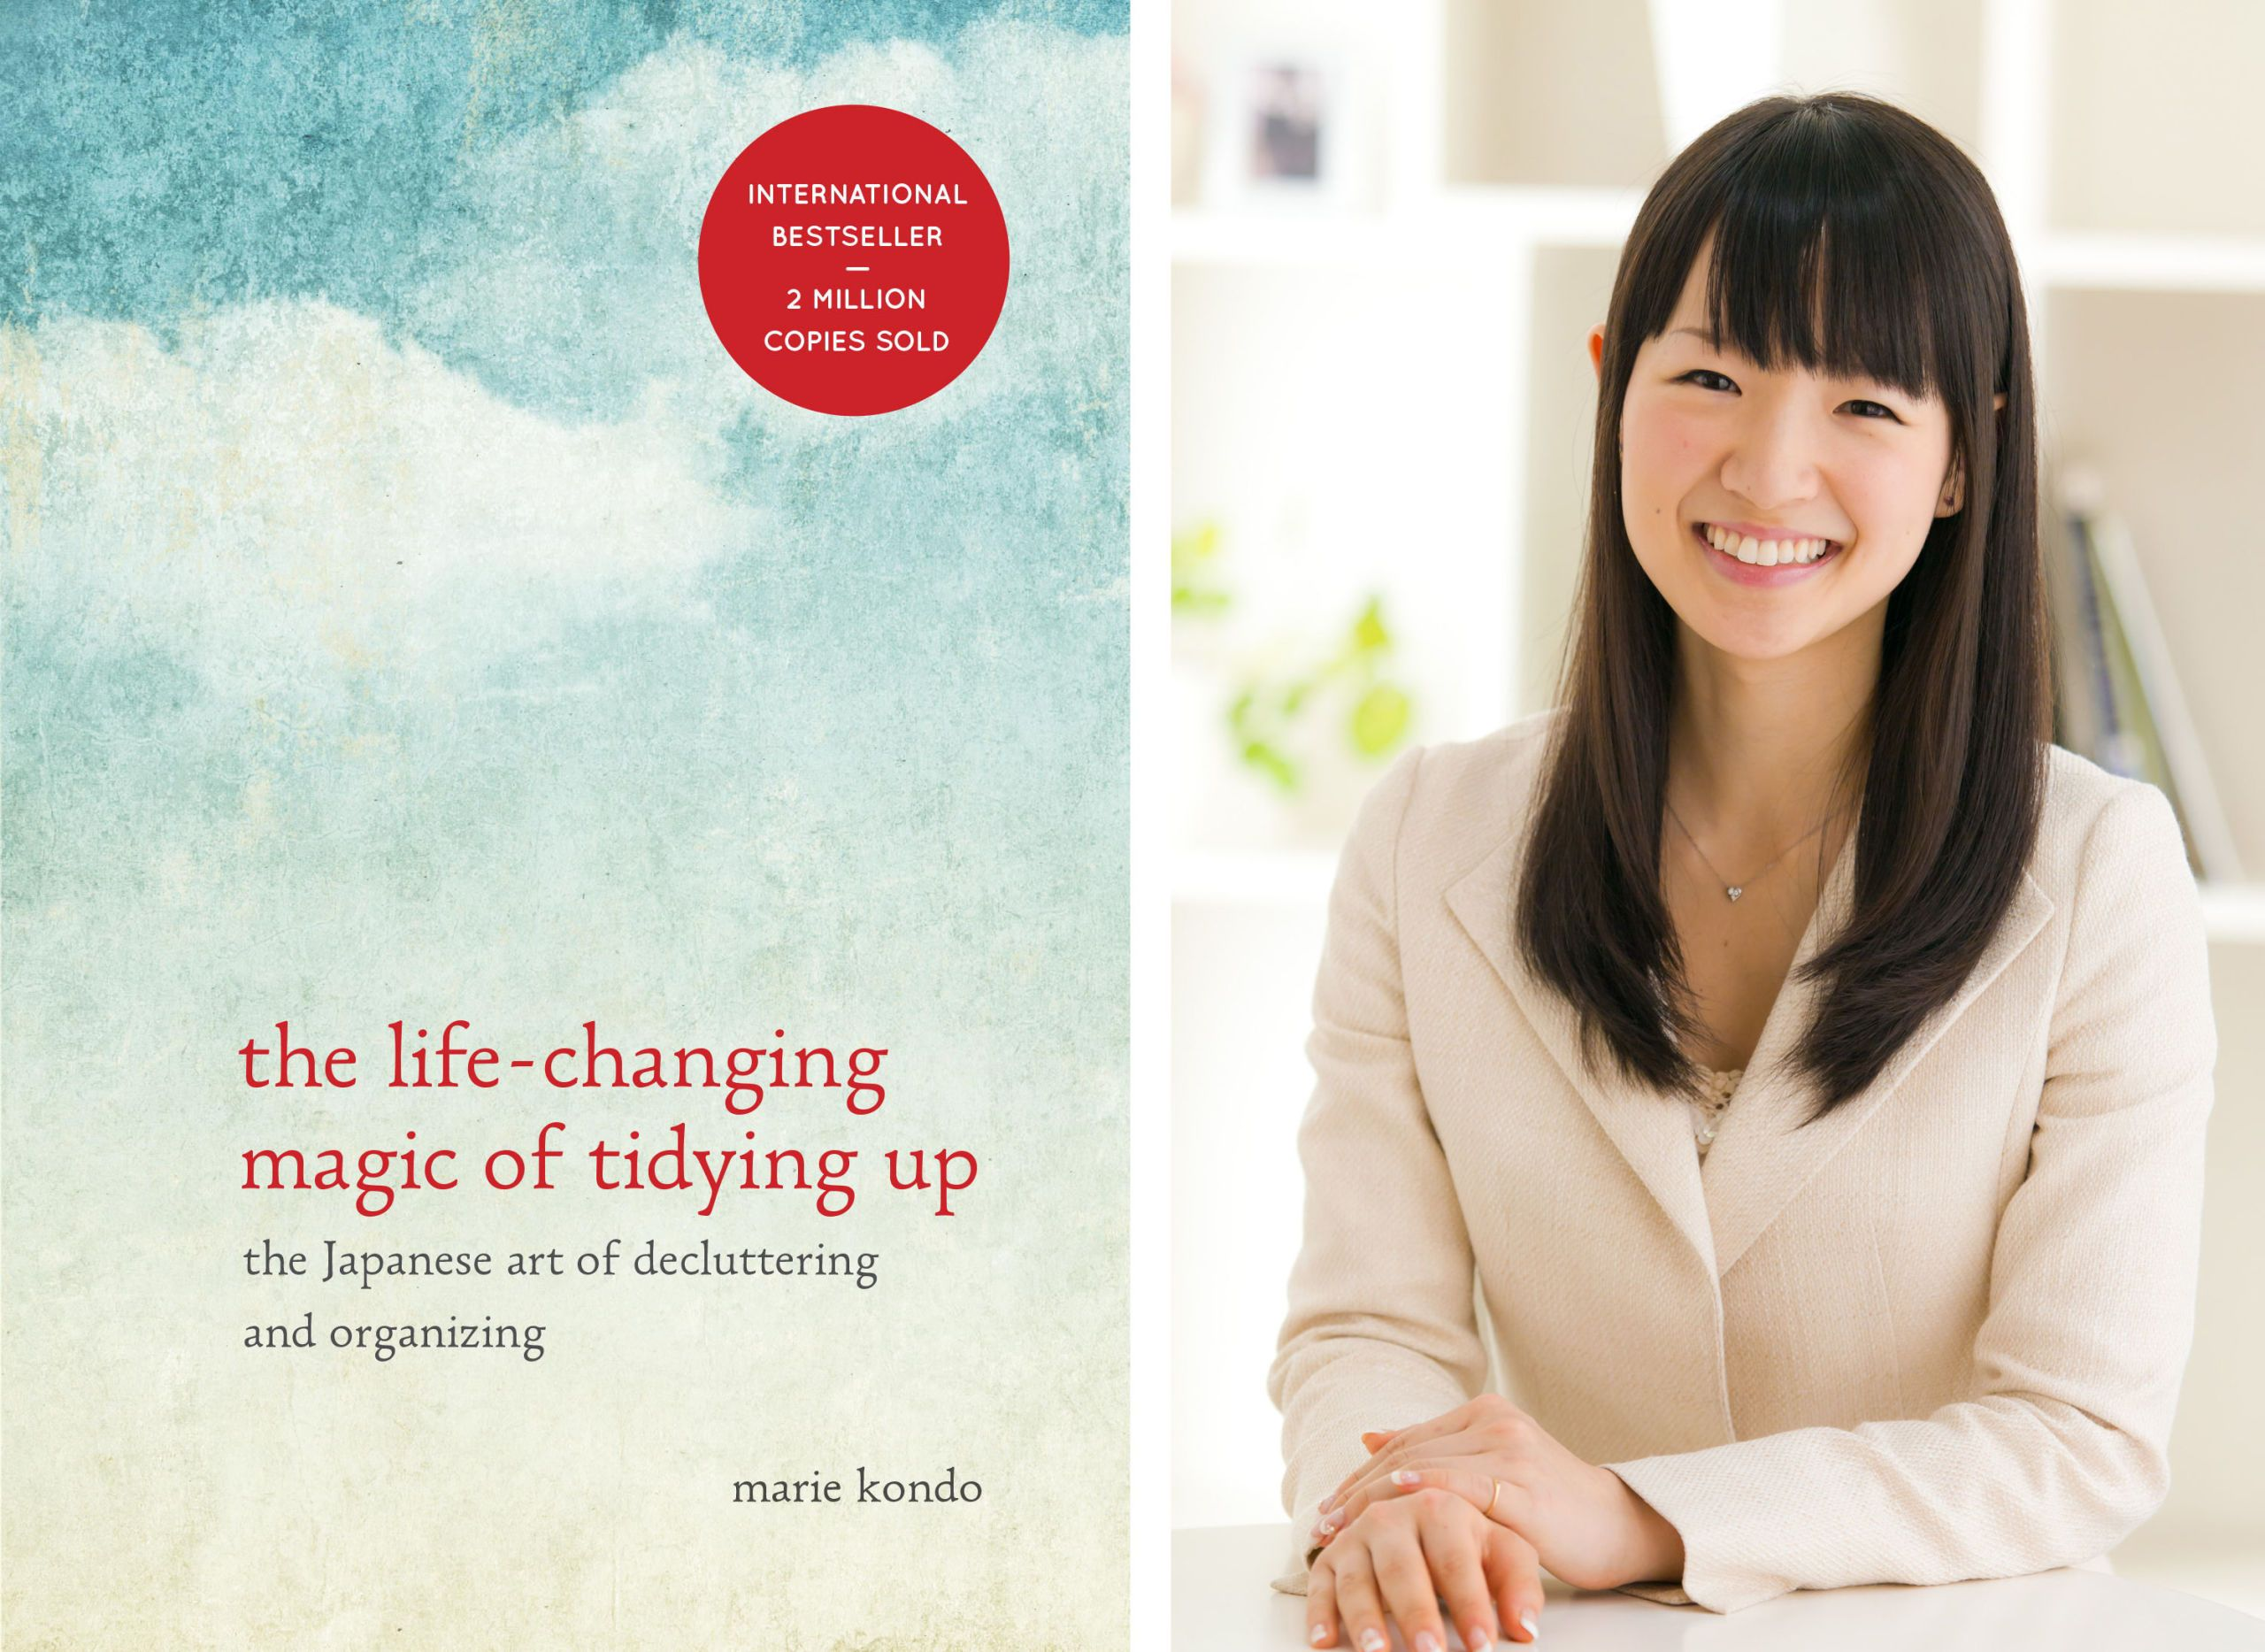 7 Life-Changing Organizing Lessons We Learned from Marie Kondo